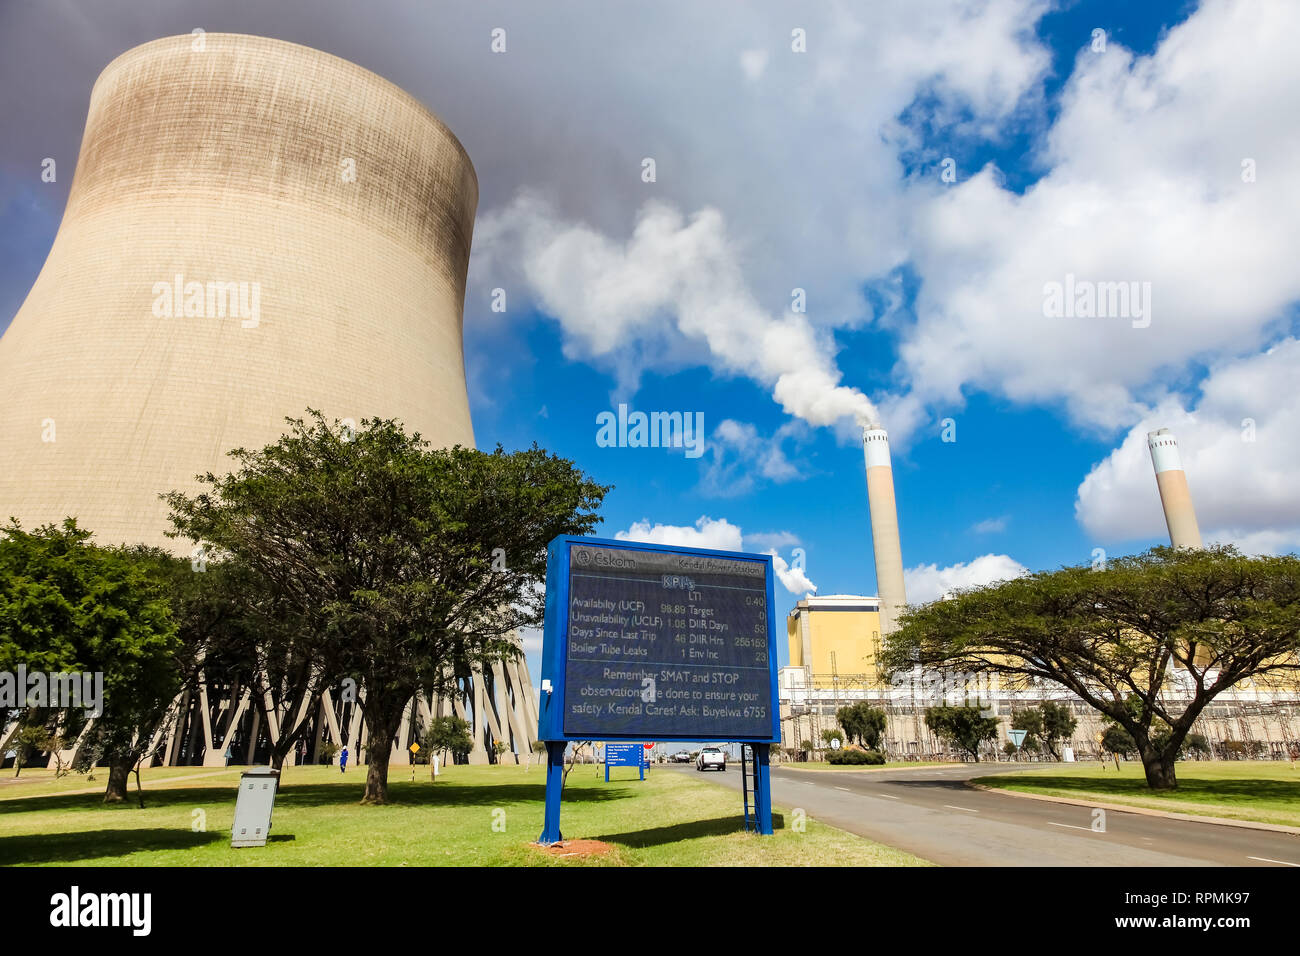 Johannesburg, South Africa - April 12 2012: Outside a Coal Burning Power Station - Stock Image